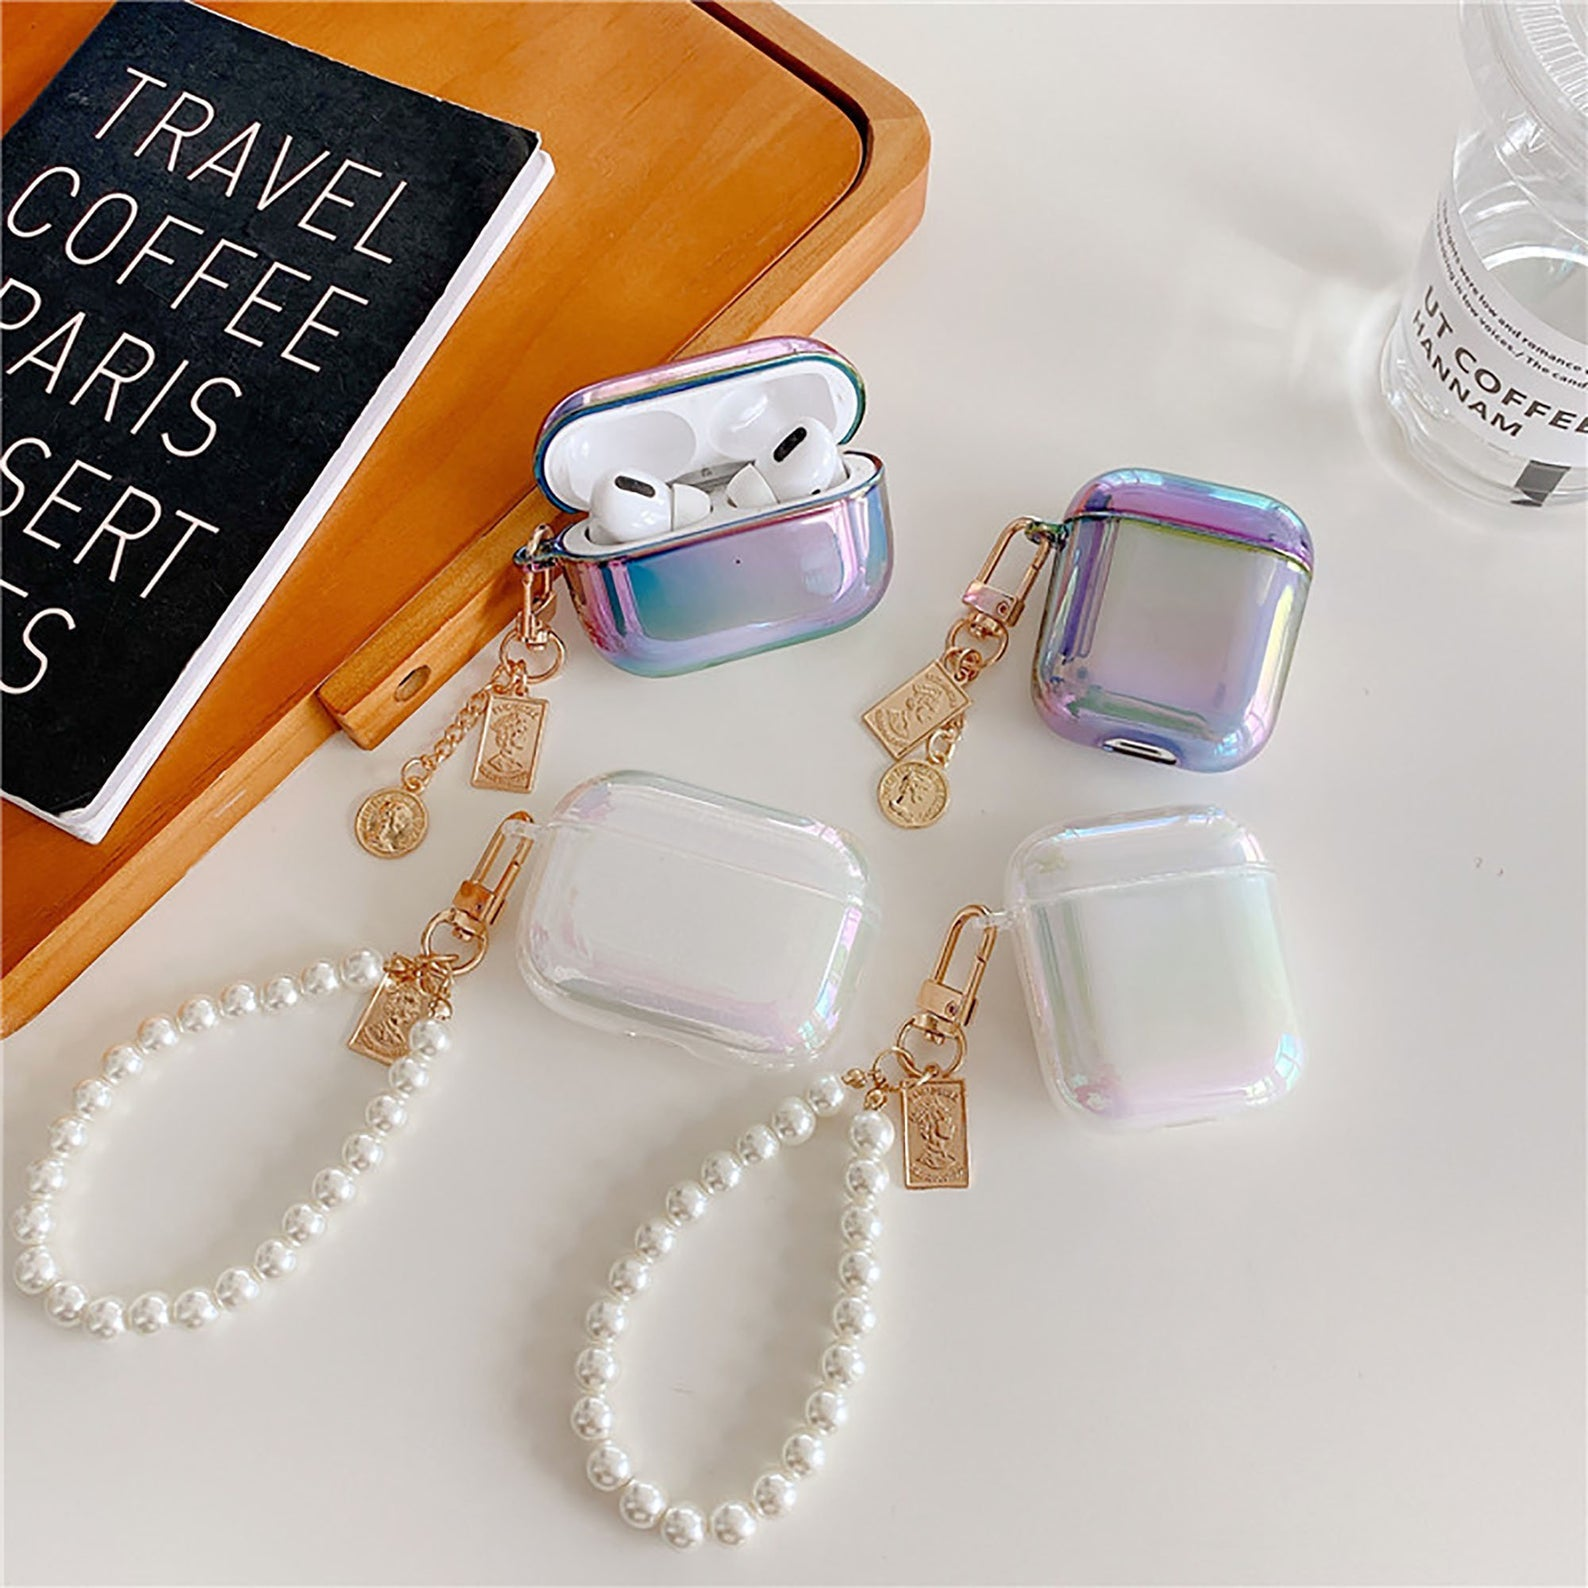 Waterdrop Airpod Pro Case by Veronique